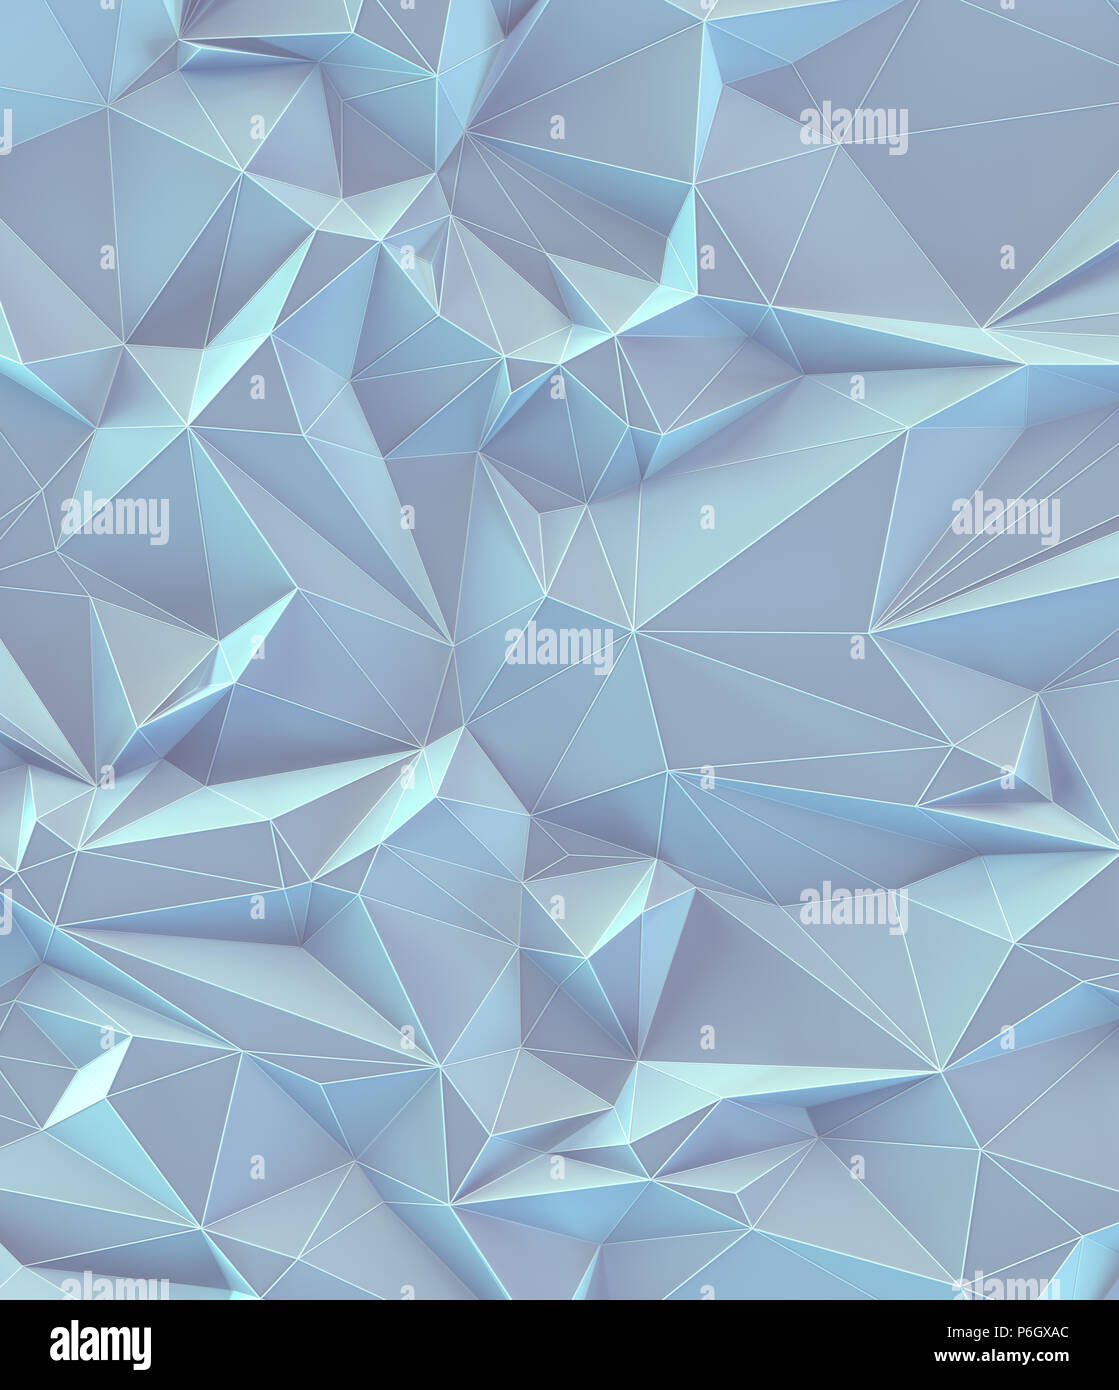 3D illustration. Abstract background image, in lines et géométriques formes triangulaires. Vintage de couleur pastel. Photo Stock